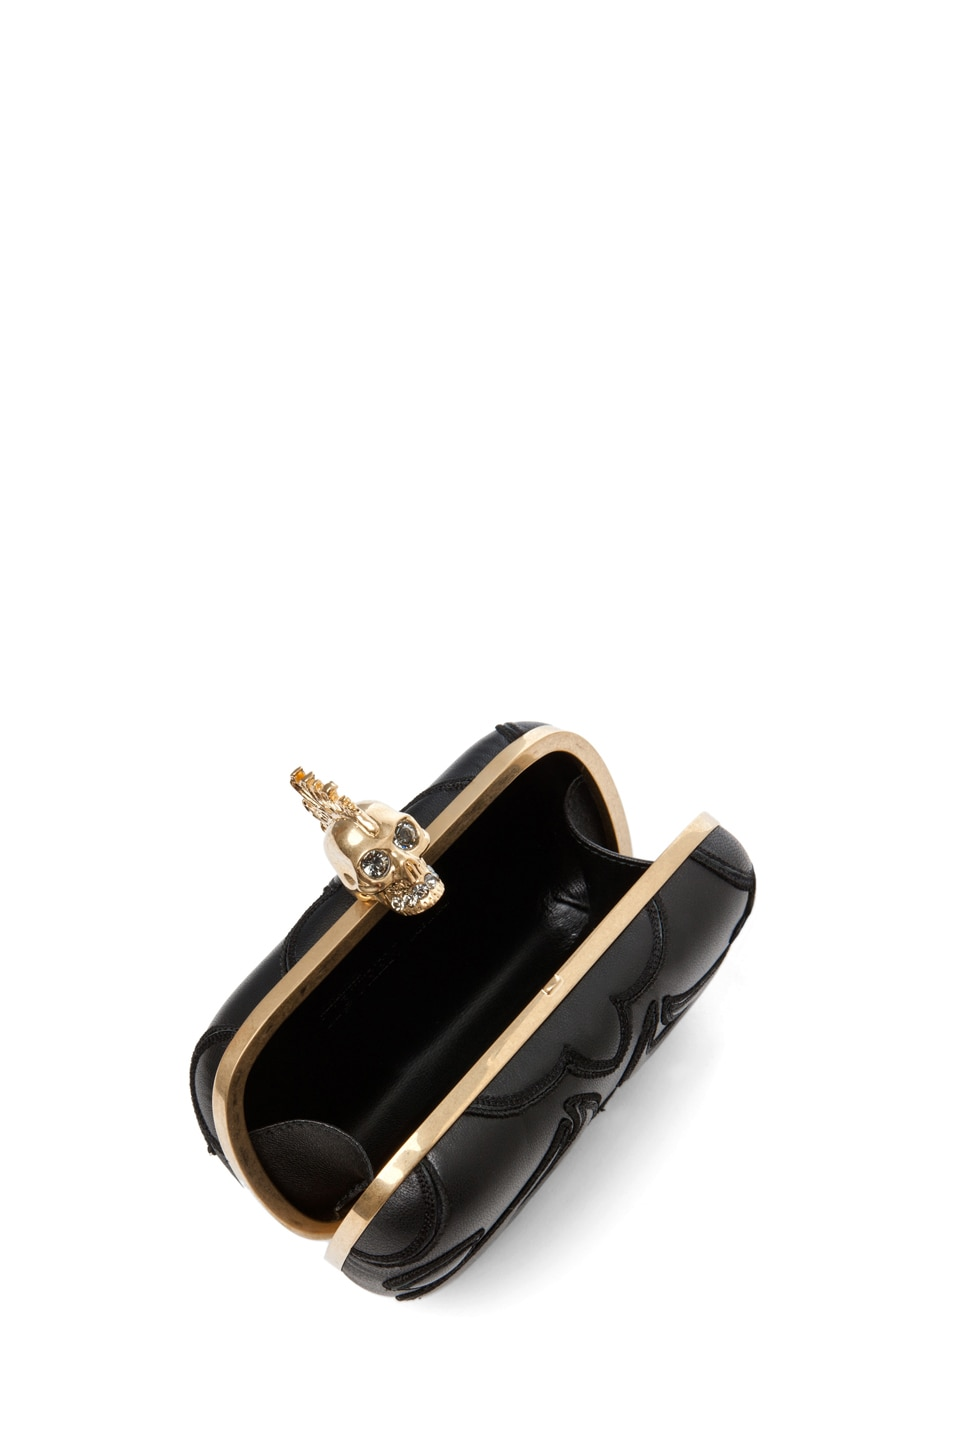 Image 4 of Alexander McQueen Punk Baroc Skull Box Clutch in Black